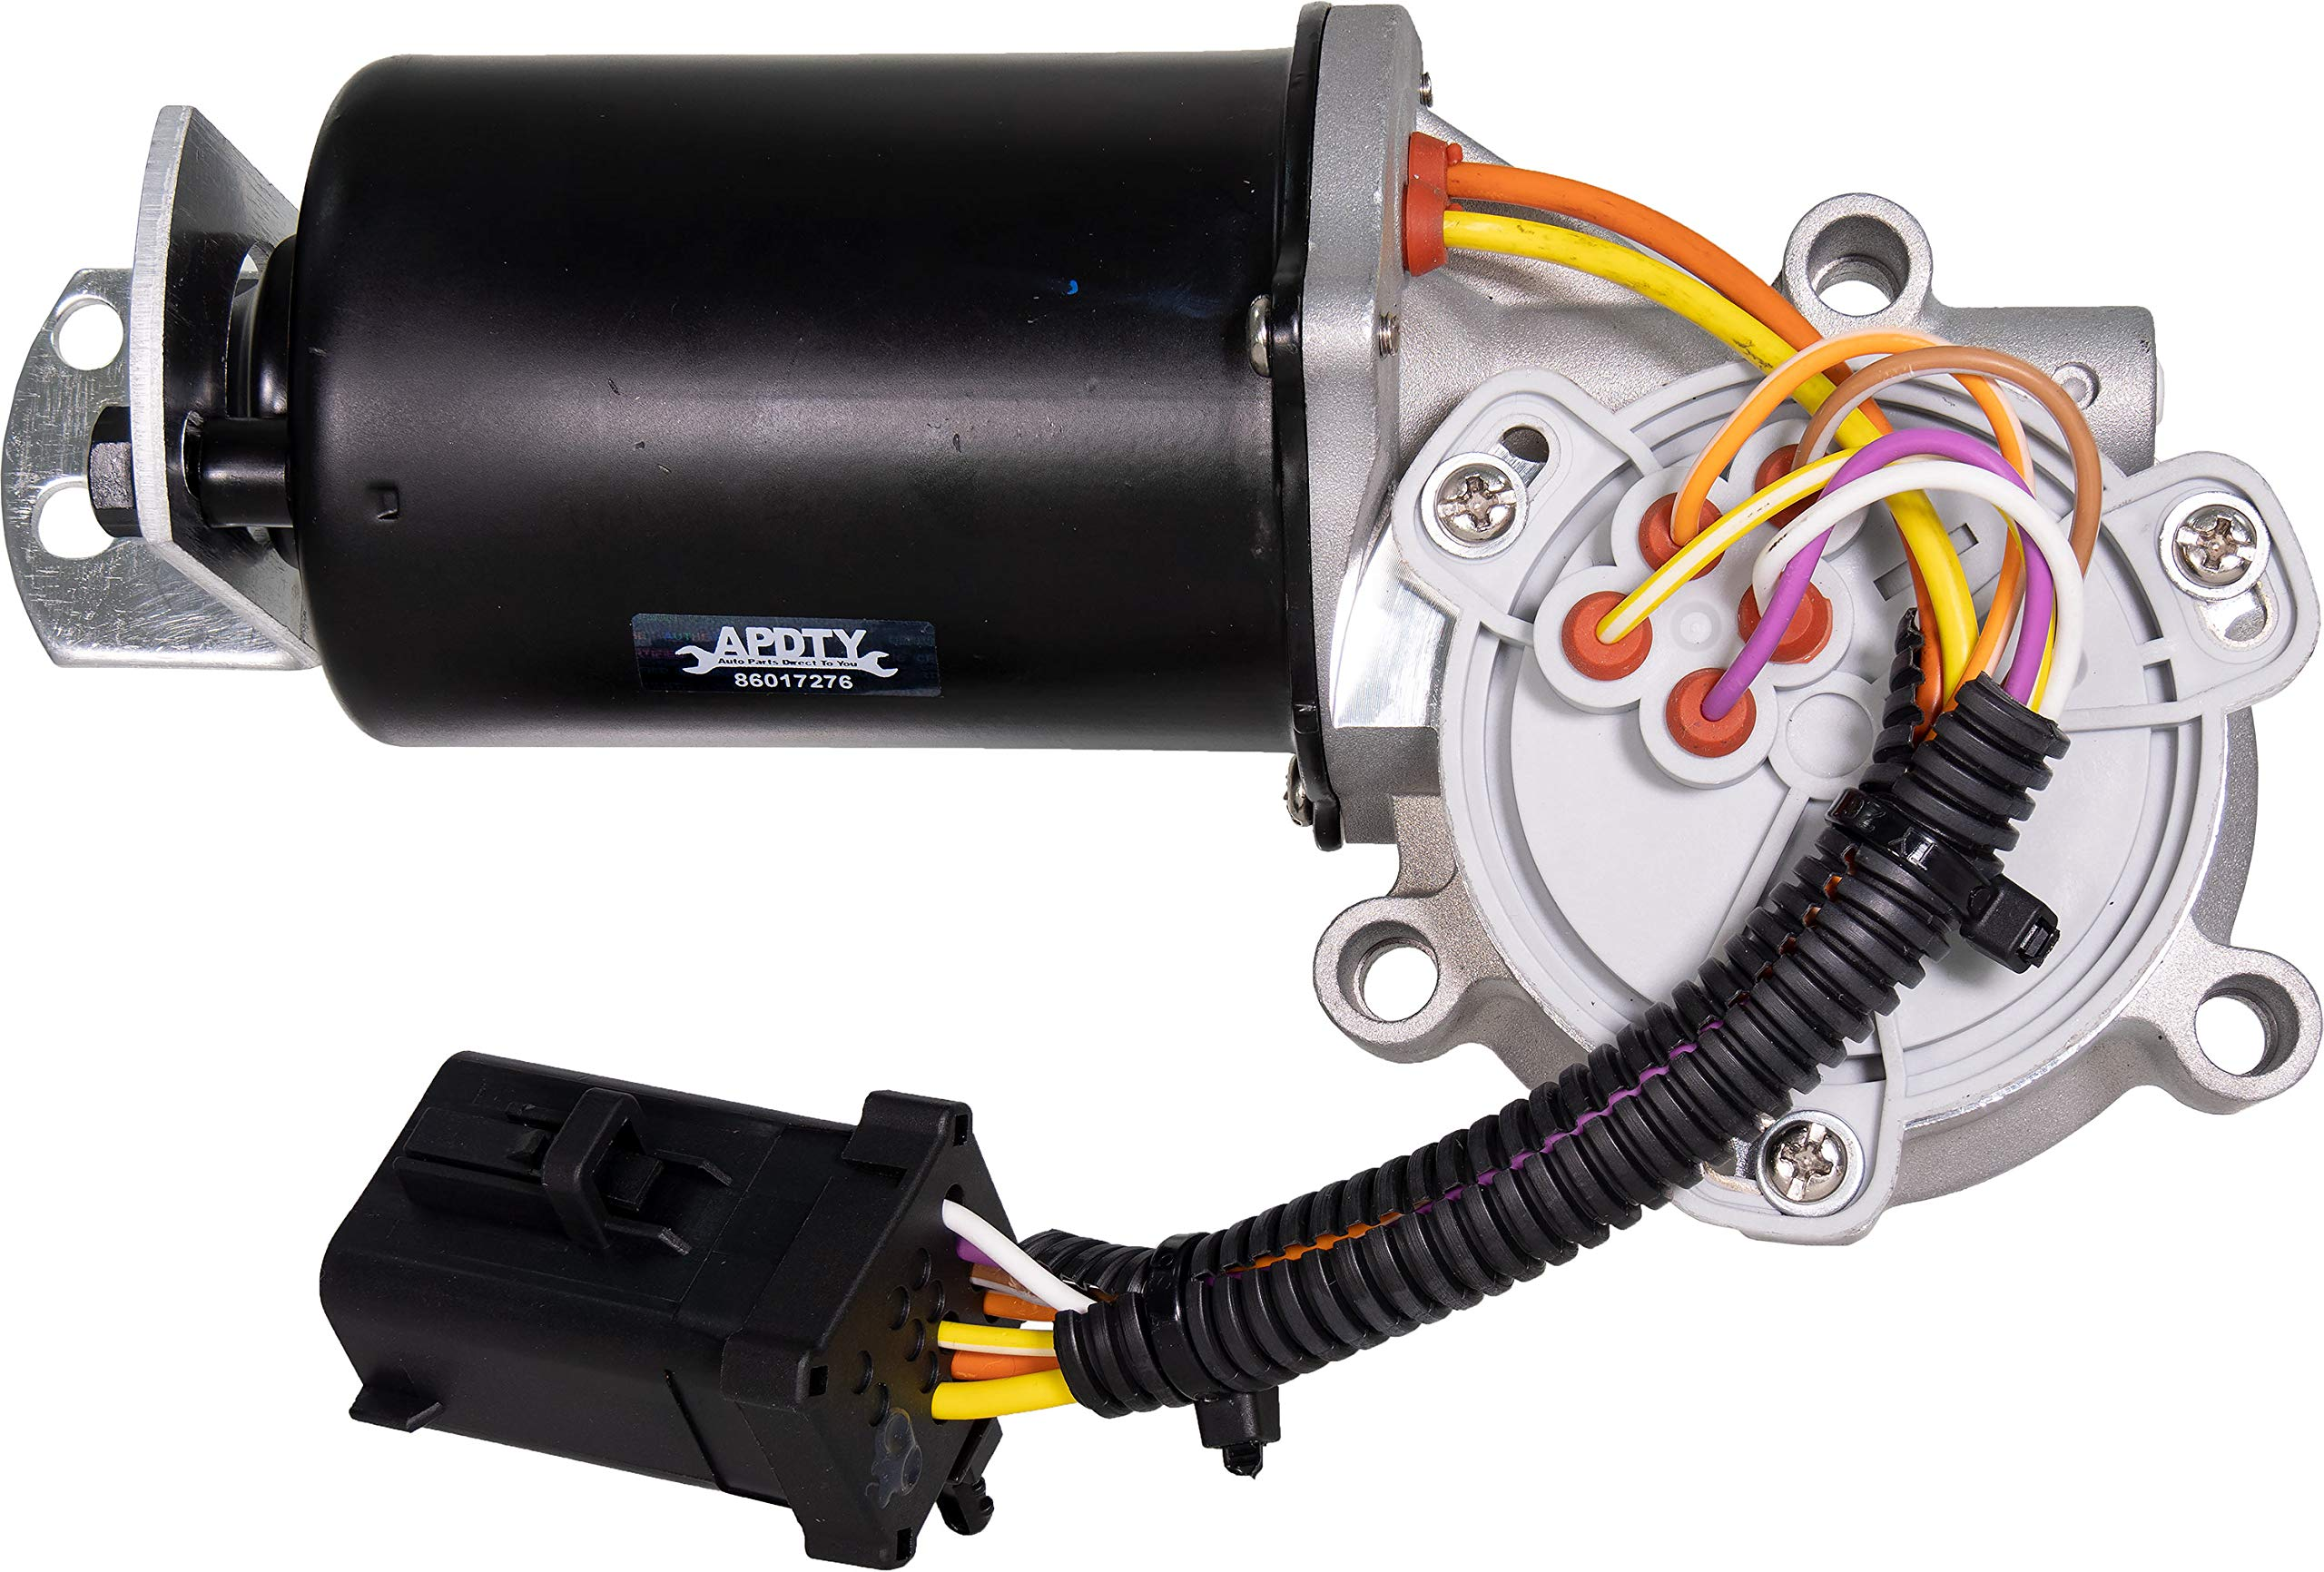 APDTY 711022 Transfer Case Shift Motor Fits 2004-2008 Ford F150 or Lincoln Mark LT 4-Wheel Drive 4WD Pickup Truck (Replaces 4L3Z7G360BA, 5L3Z-7G360-A, 8L3Z7G360-A)